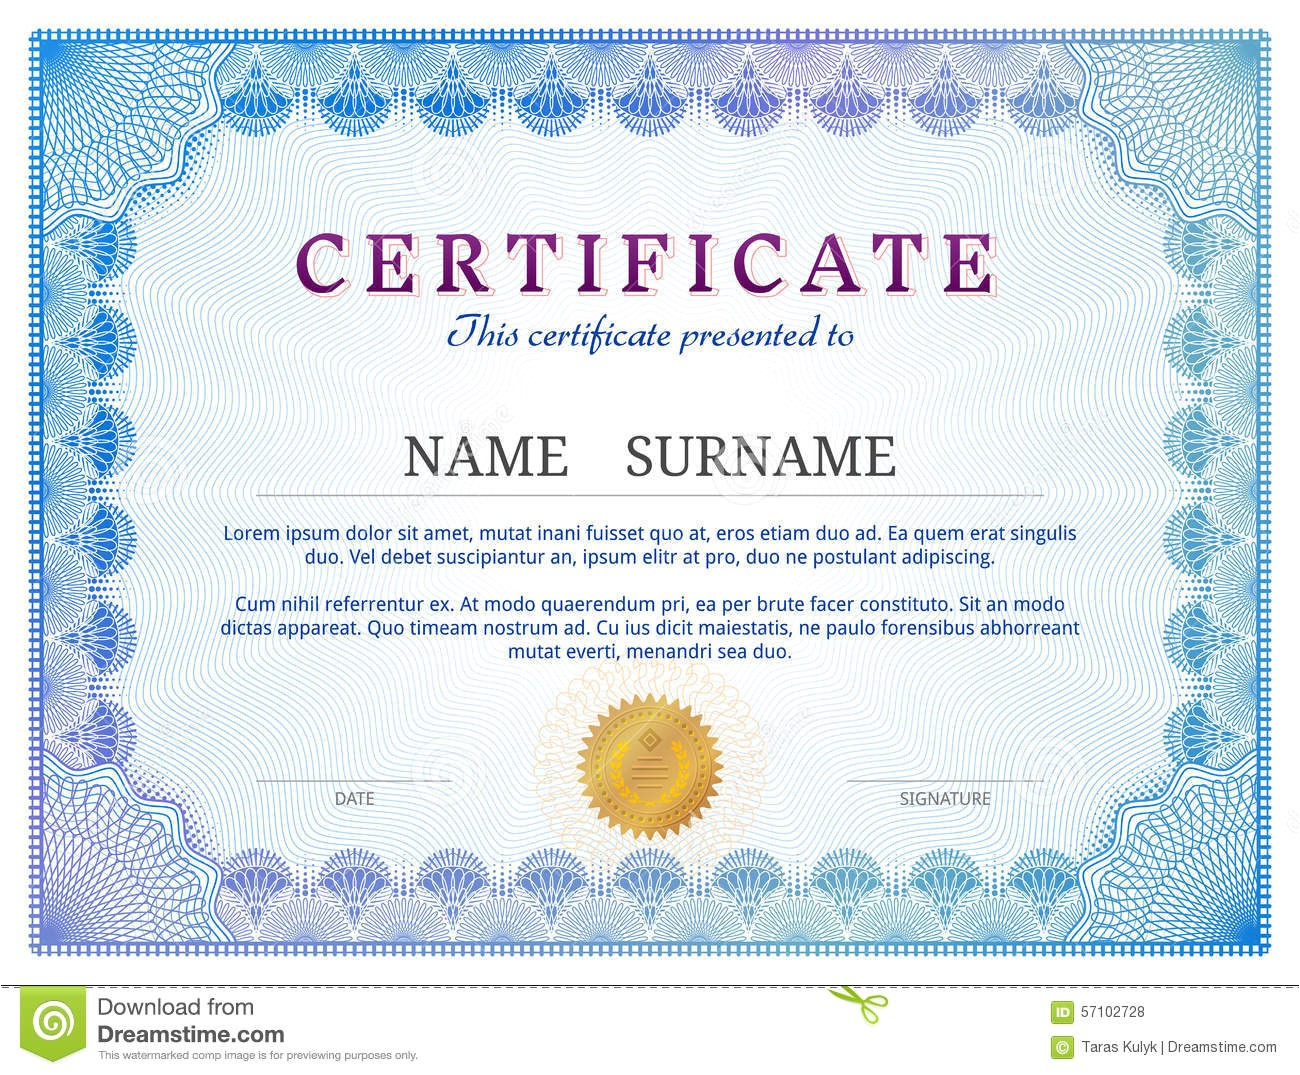 stock illustration certificate template guilloche elements blue diploma border design personal conferment qualitative vector layout image57102728